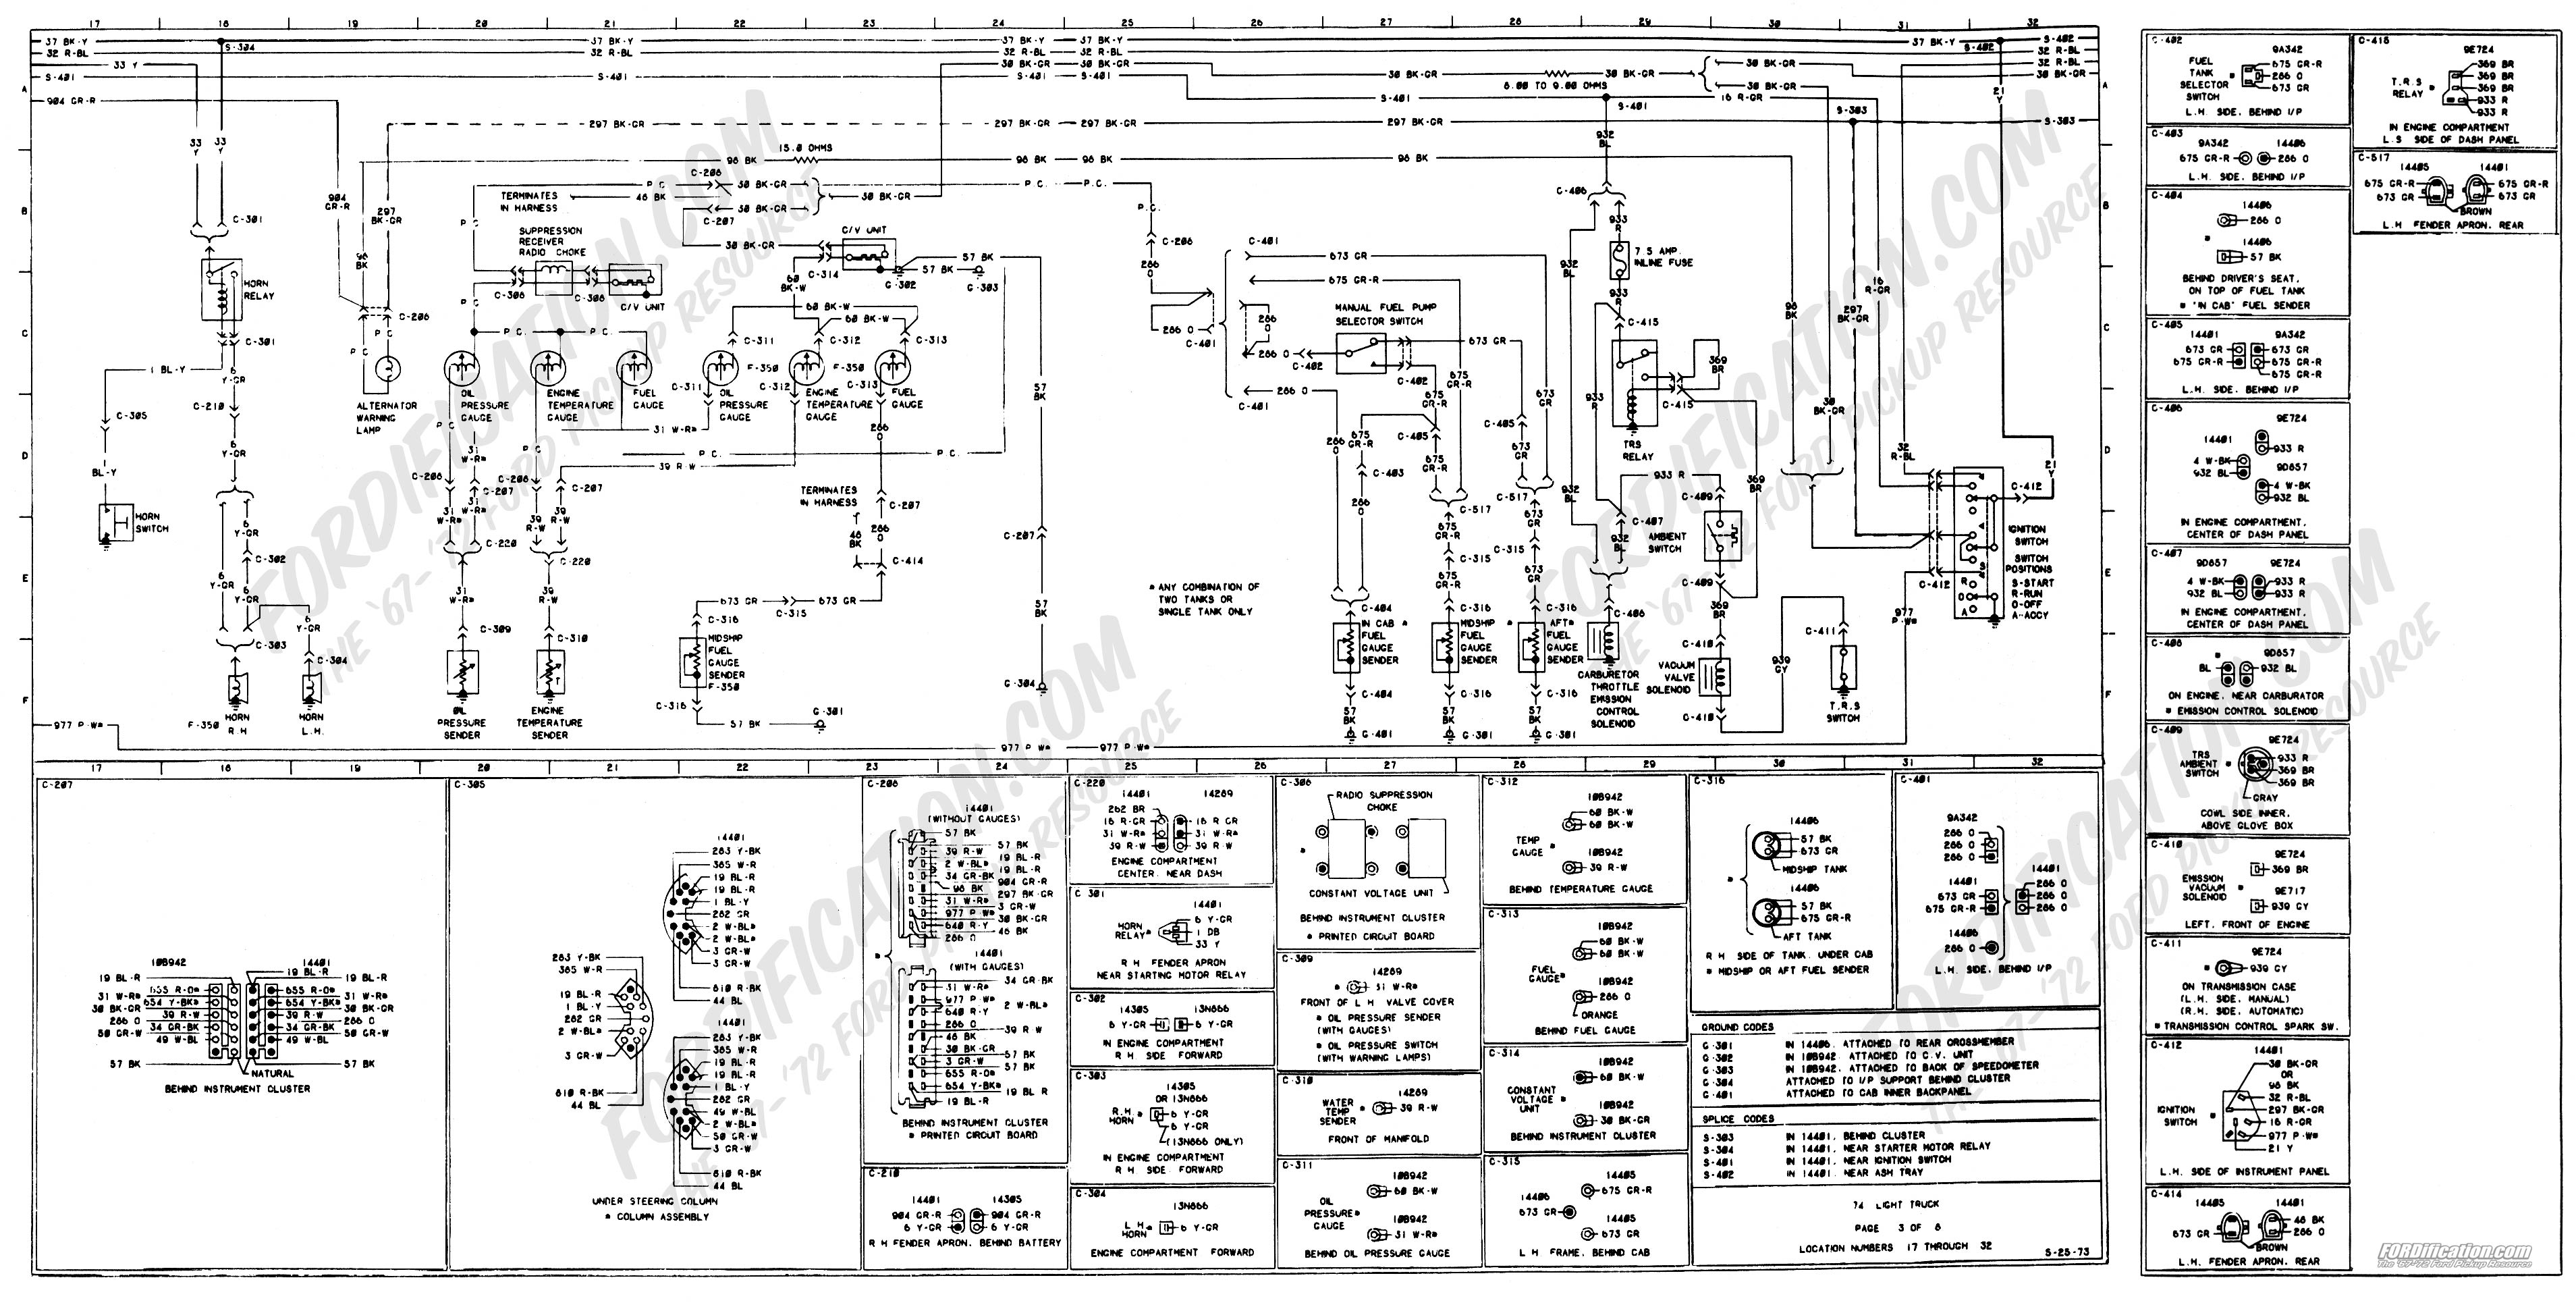 1946 Chevy Pickup Ignition Wiring Diagram Schematic List Of Images Gallery 1973 1979 Ford Truck Diagrams Schematics Fordification Net Rh